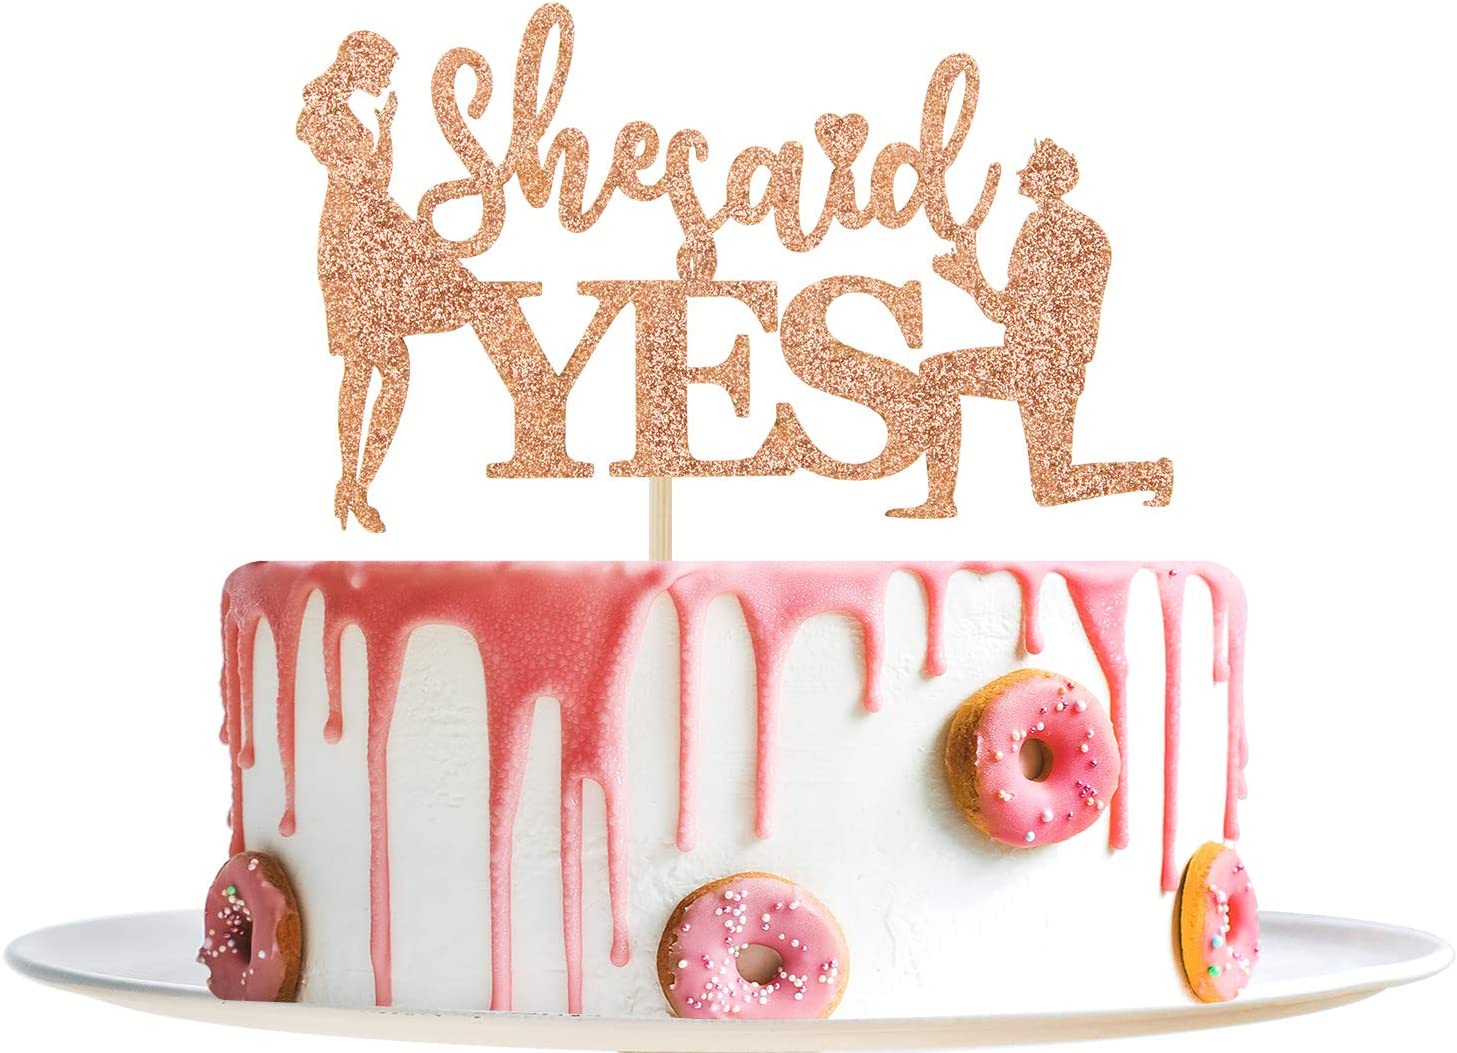 Gold Glitter She Said Yes Cake Topper Bachelorette Party Supplies Gold Bridal Shower Engagement Wedding Party Decorations